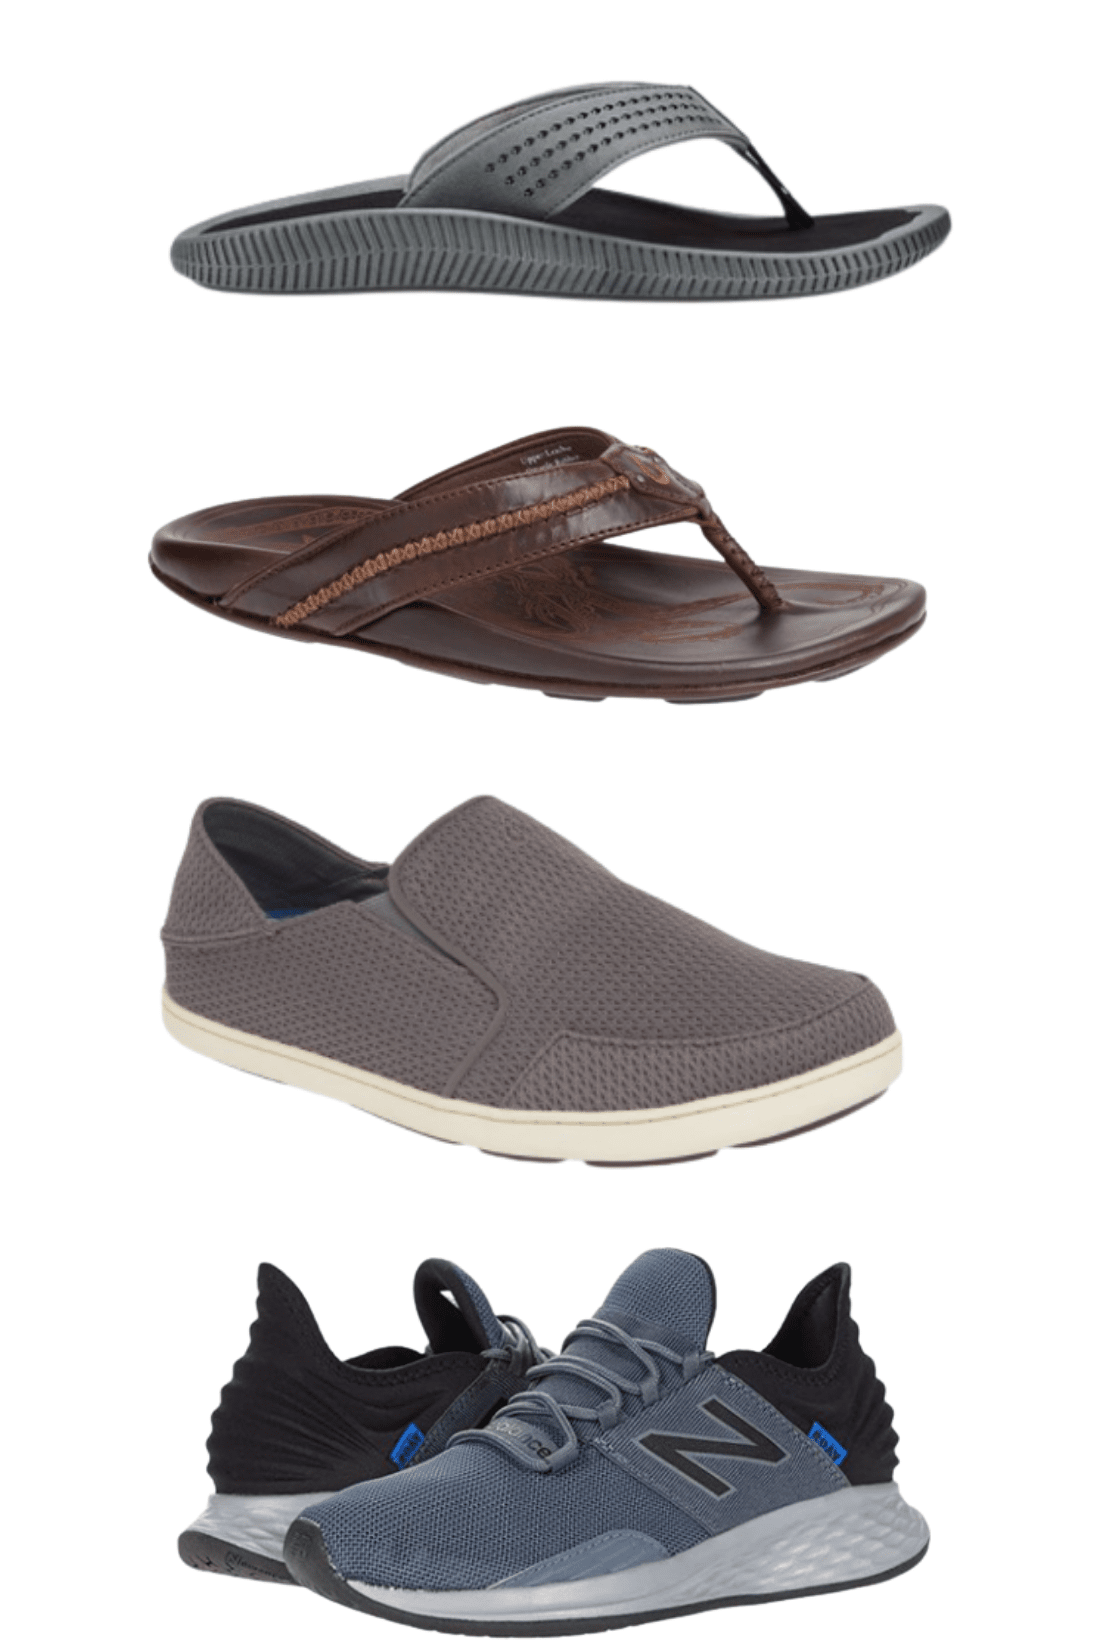 comfortable summer shoes for men